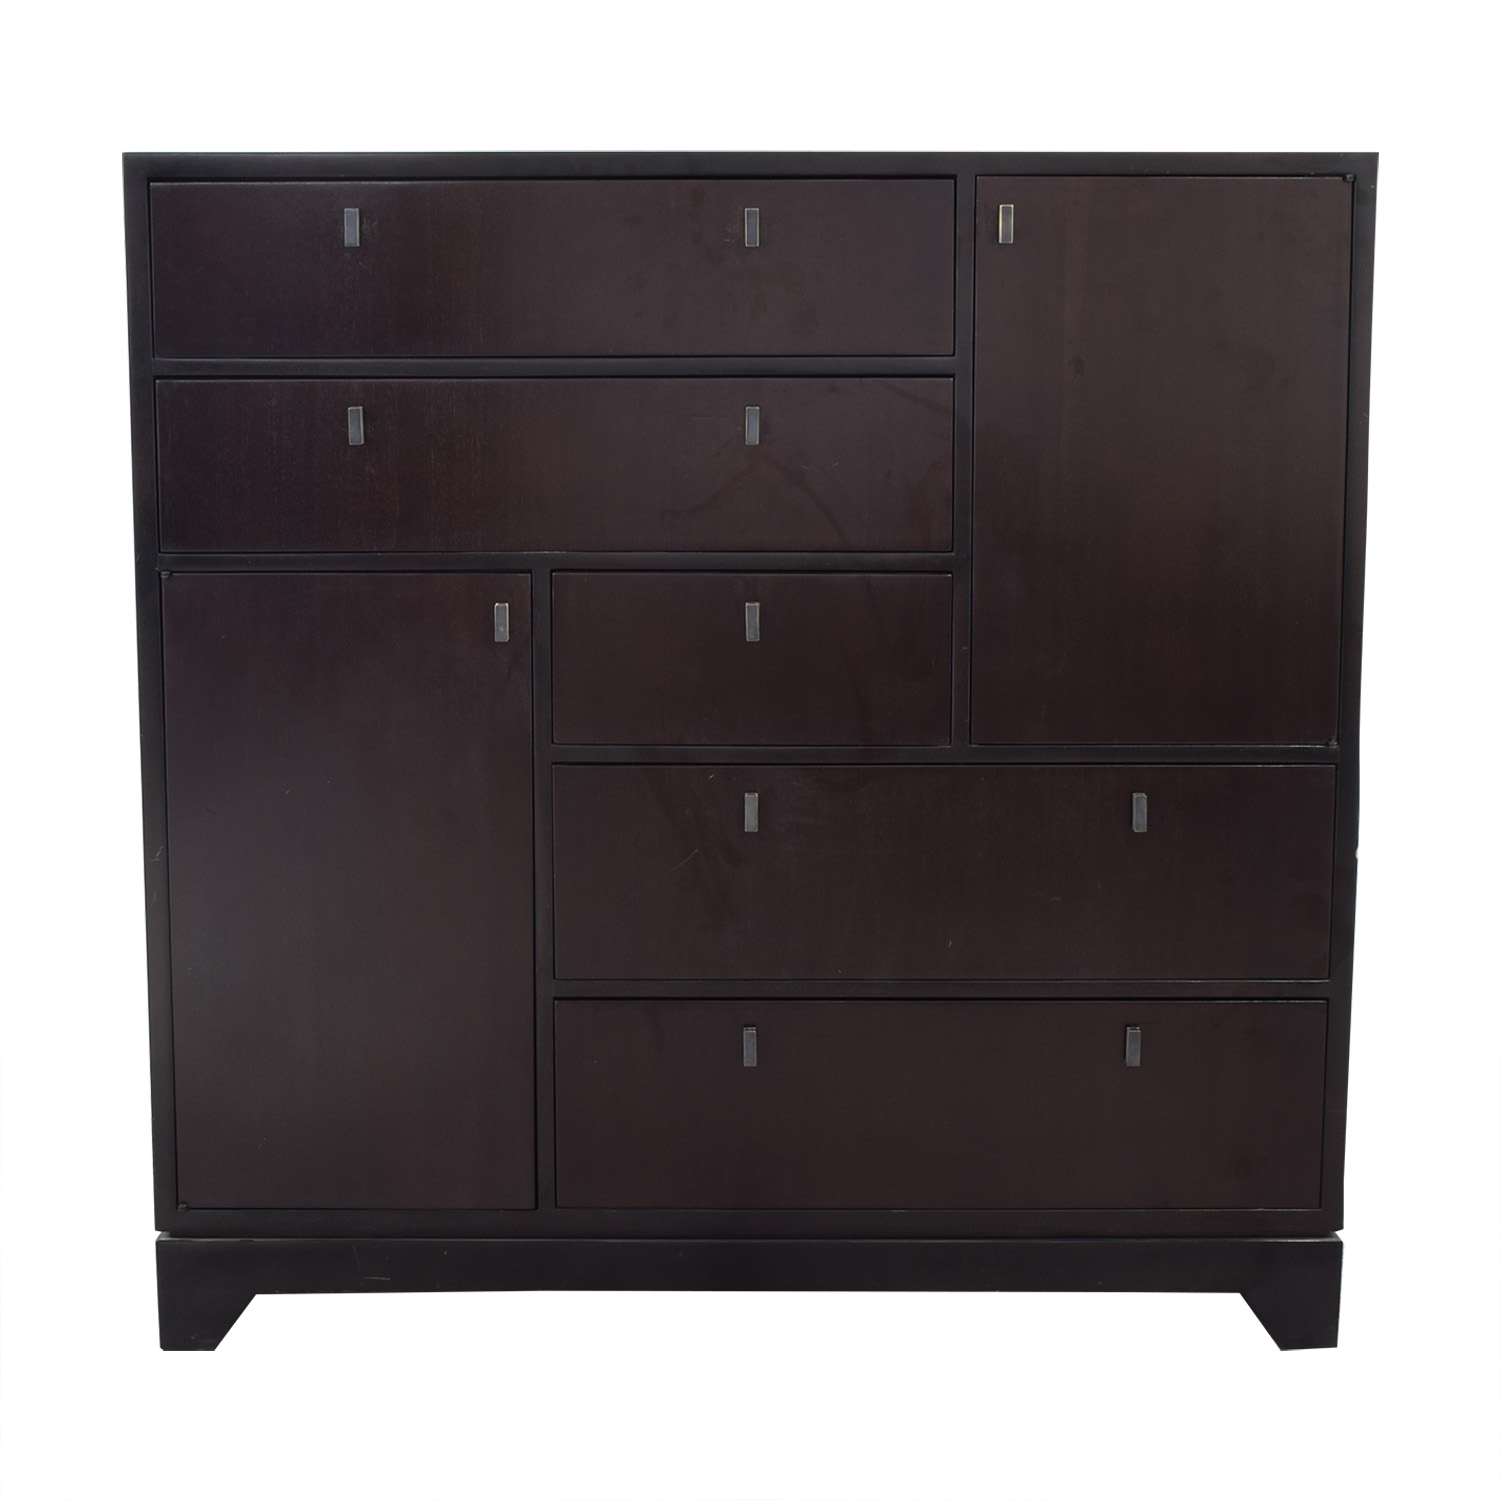 shop Crate & Barrel Five Drawer Dresser with Two Cabinets Crate & Barrel Storage